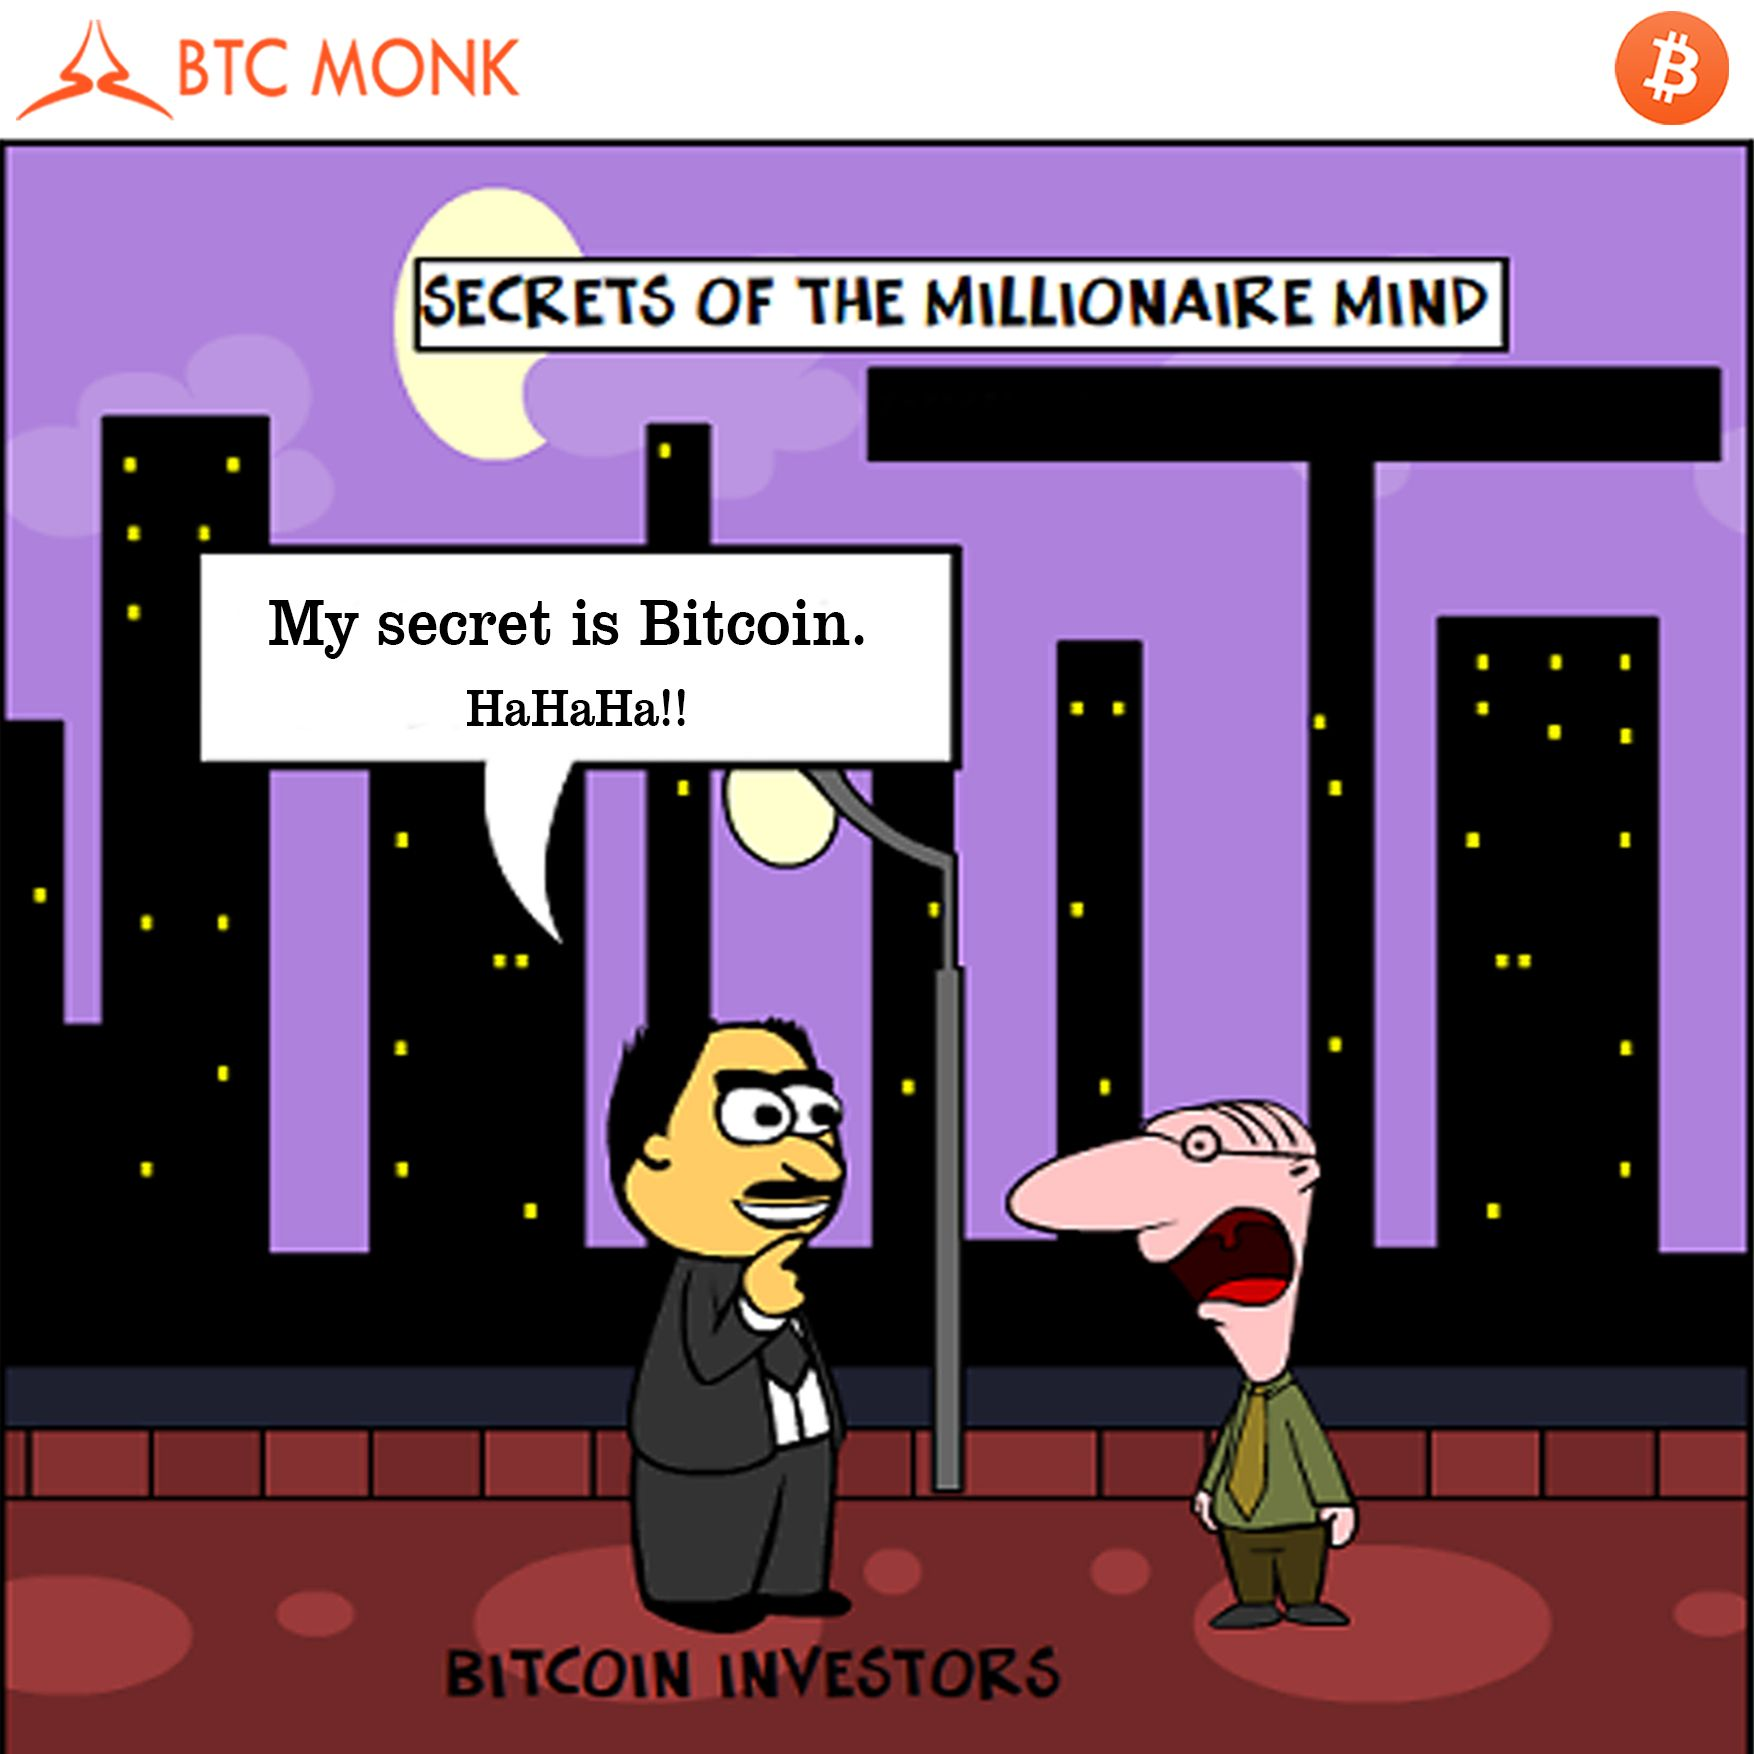 Bitcoin investment is the safest way to earn money. Read